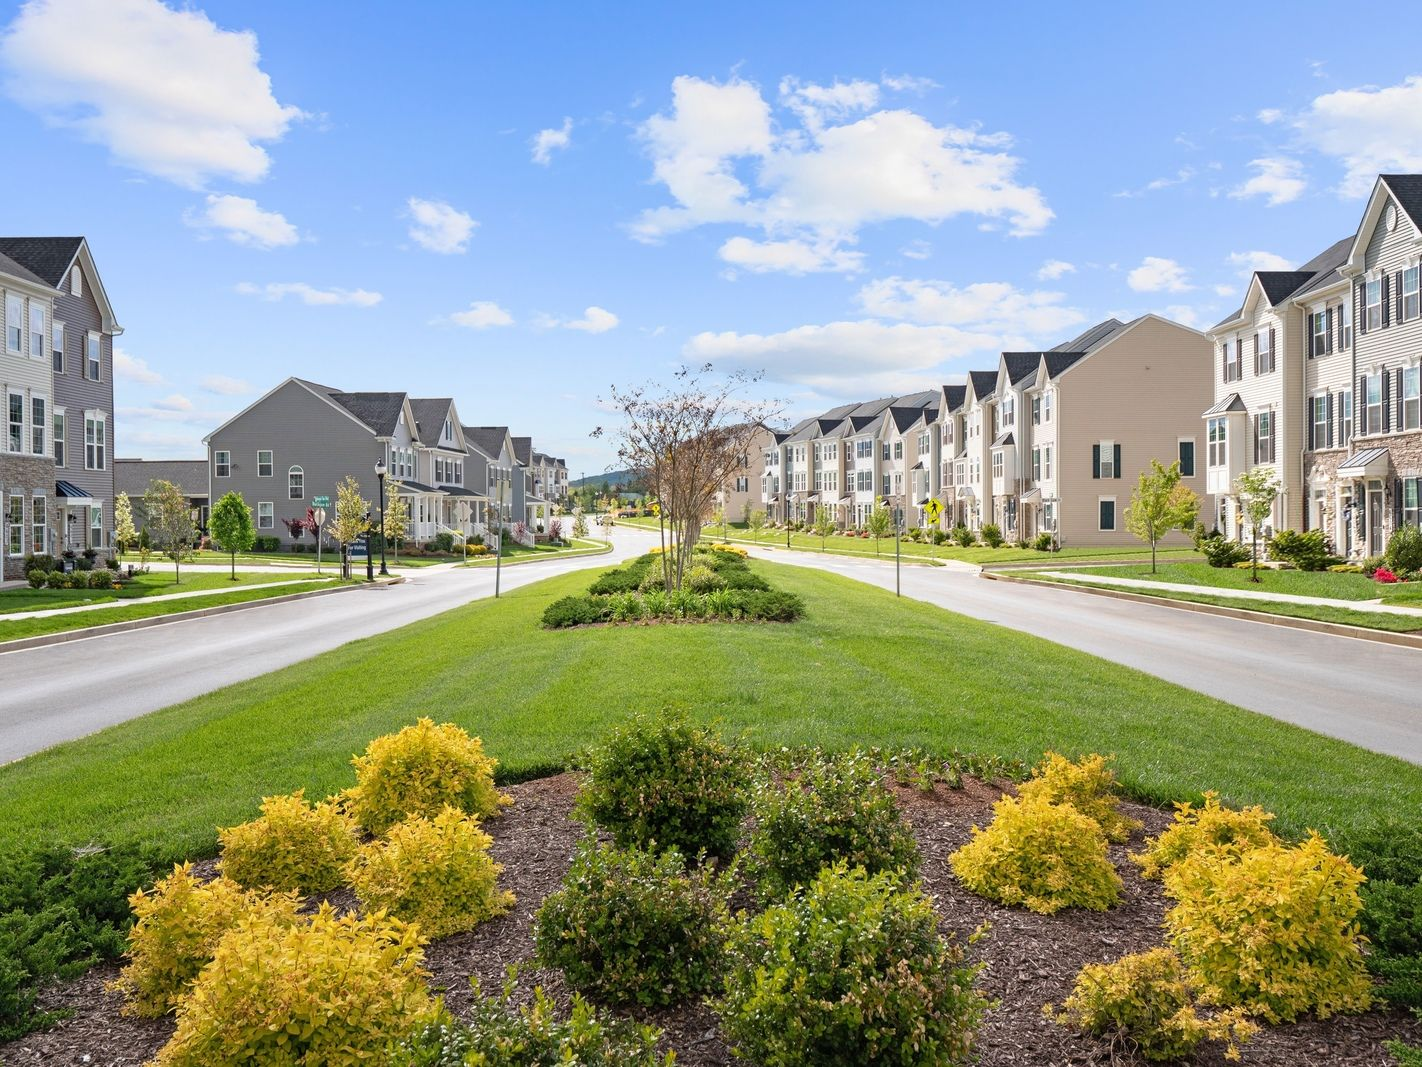 WELCOME TO BALLENGER RUN - FREDERICK'S BEST SELLING COMMUNITY!:A true neighborhood to call home. You'll enjoy a convenient location at the price you need starting from thelow $300s.Click here to schedule your visit today!